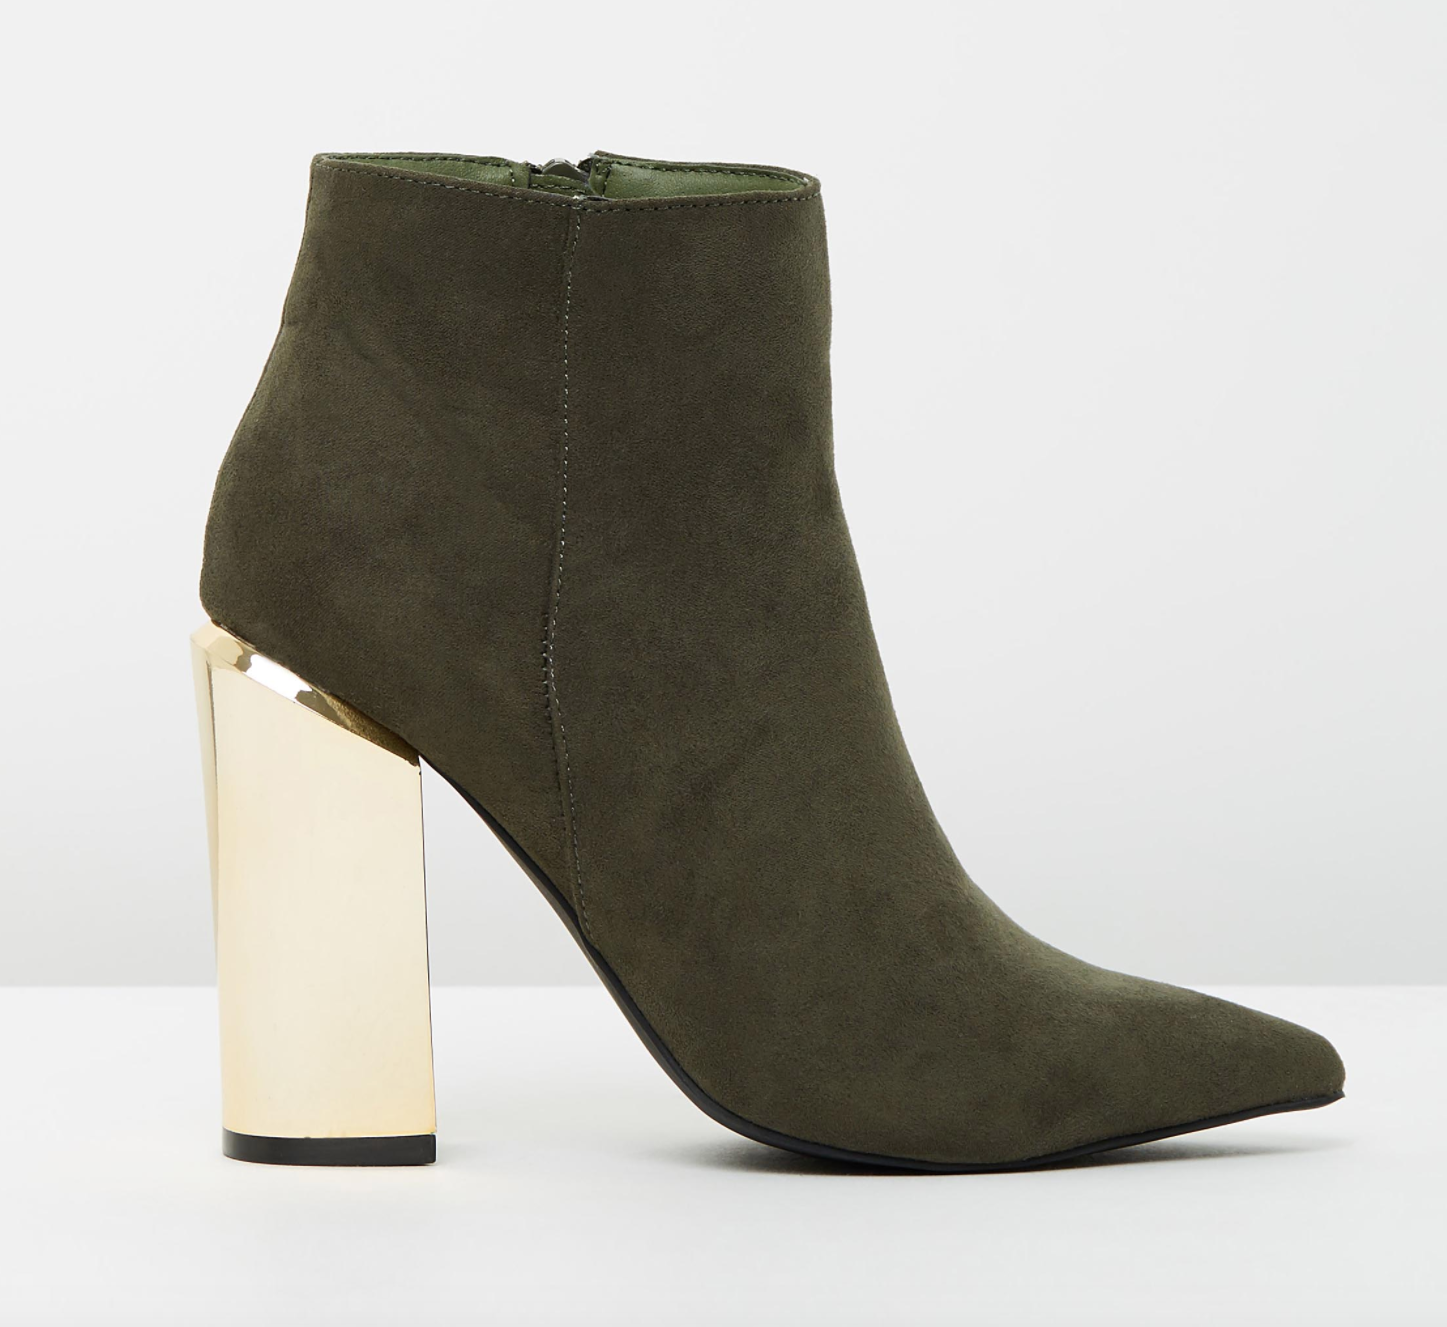 Spurr Nicole ankle boots $69.95